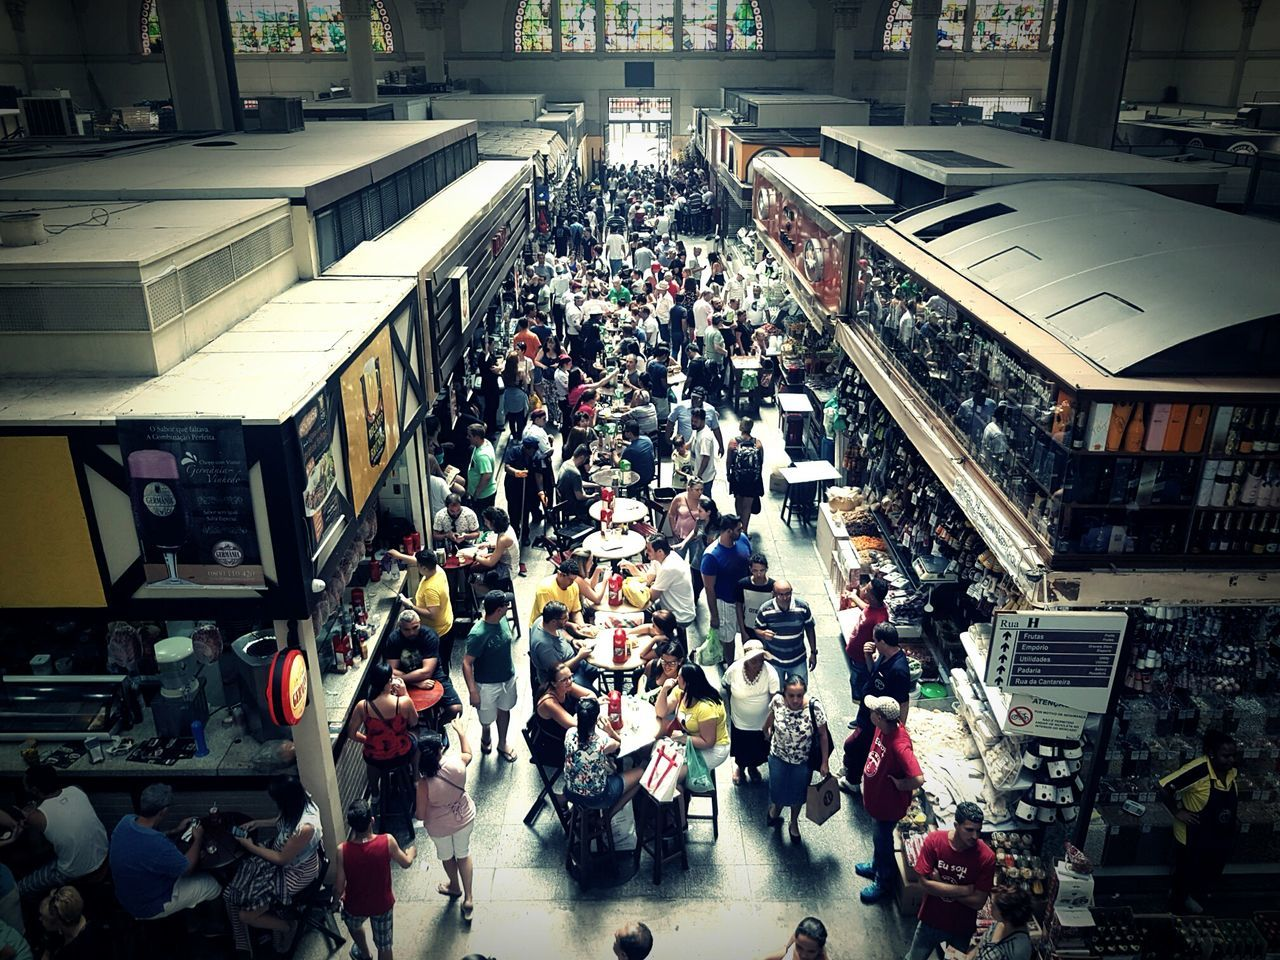 Crowd Large Group Of People High Angle View People Architecture Built Structure Indoors  Day Brazil EyeEmNewHere TCPM Getty Images Premium Collection The Street Photographer - 2017 EyeEm Awards Mercado Mercado Municipal De São Paulo Sao Paulo - Brazil